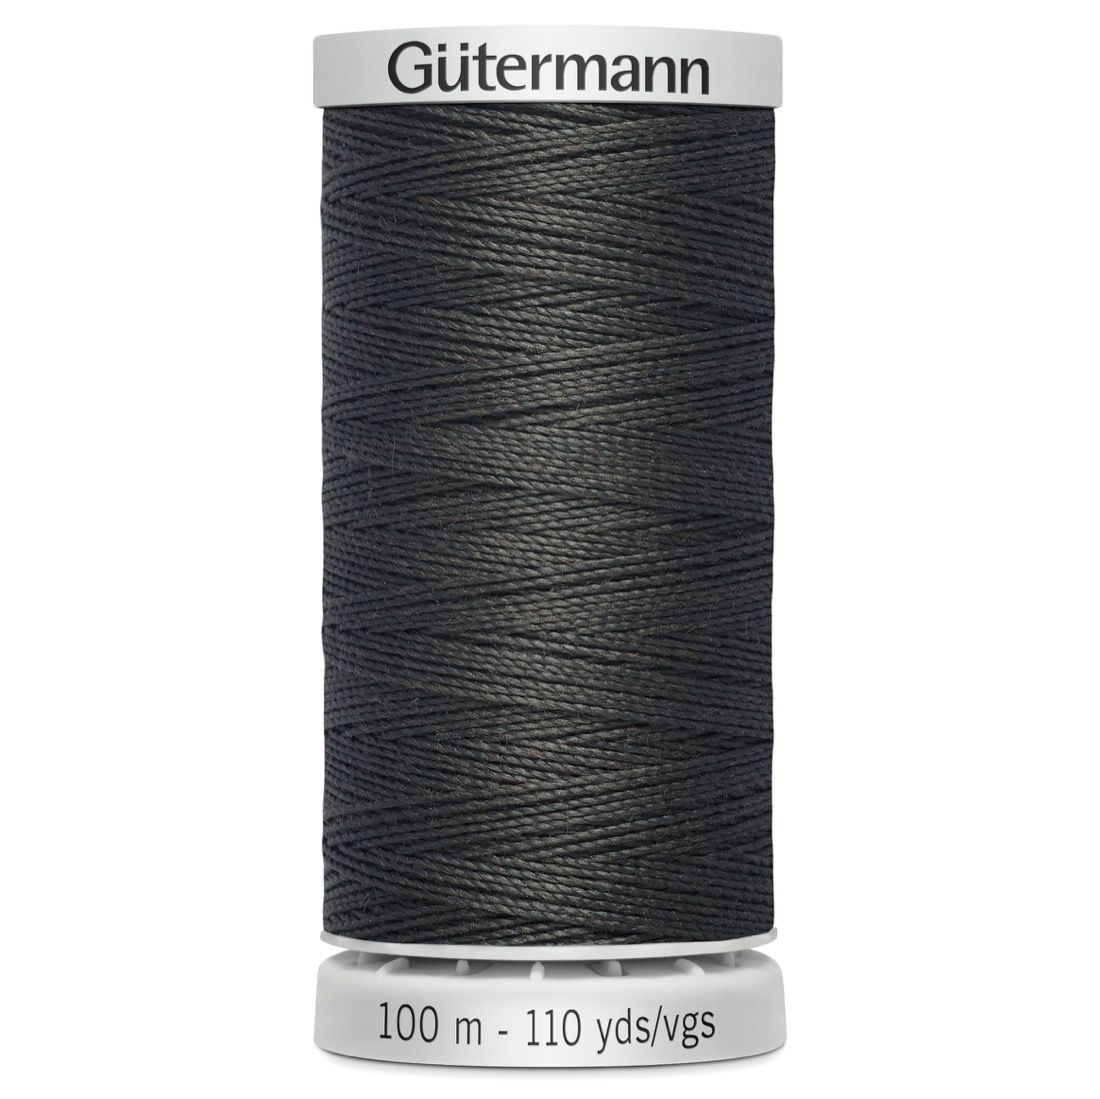 Gutermann Extra Strong Upholstery Thread - 100m - 36